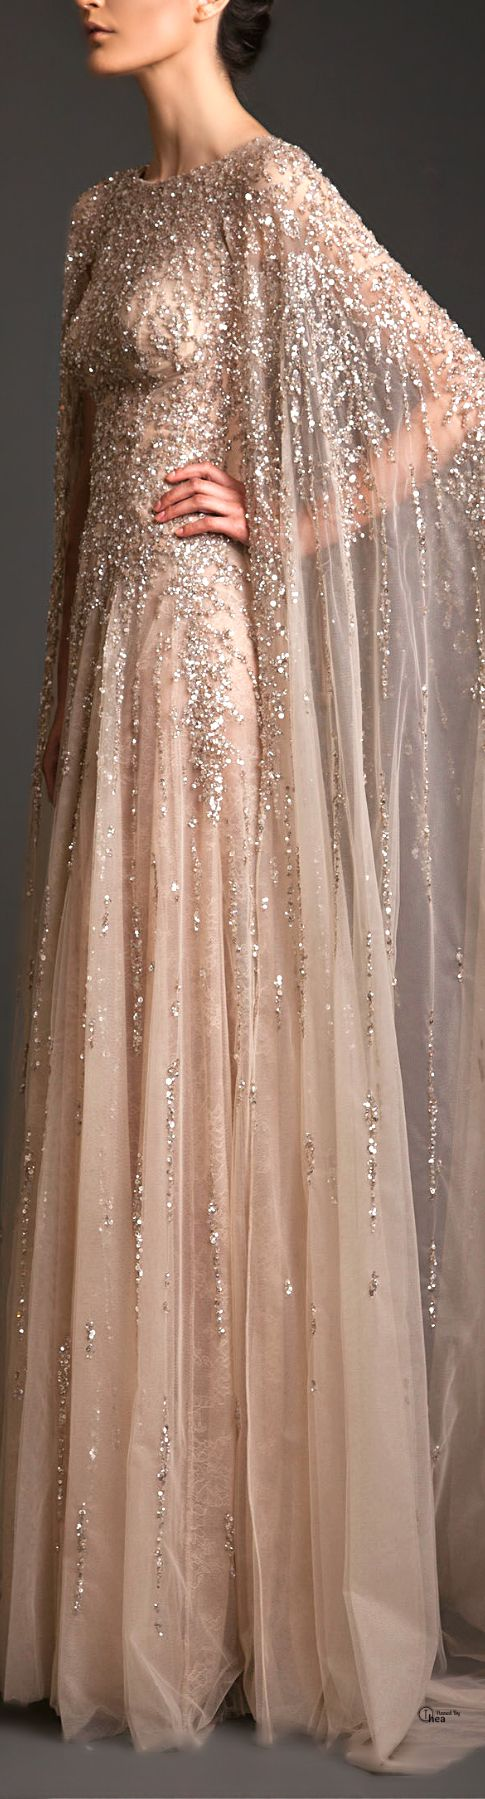 Krikor Jabotian ● Couture SS 2014 - Armenian couture designer...now that's perfection